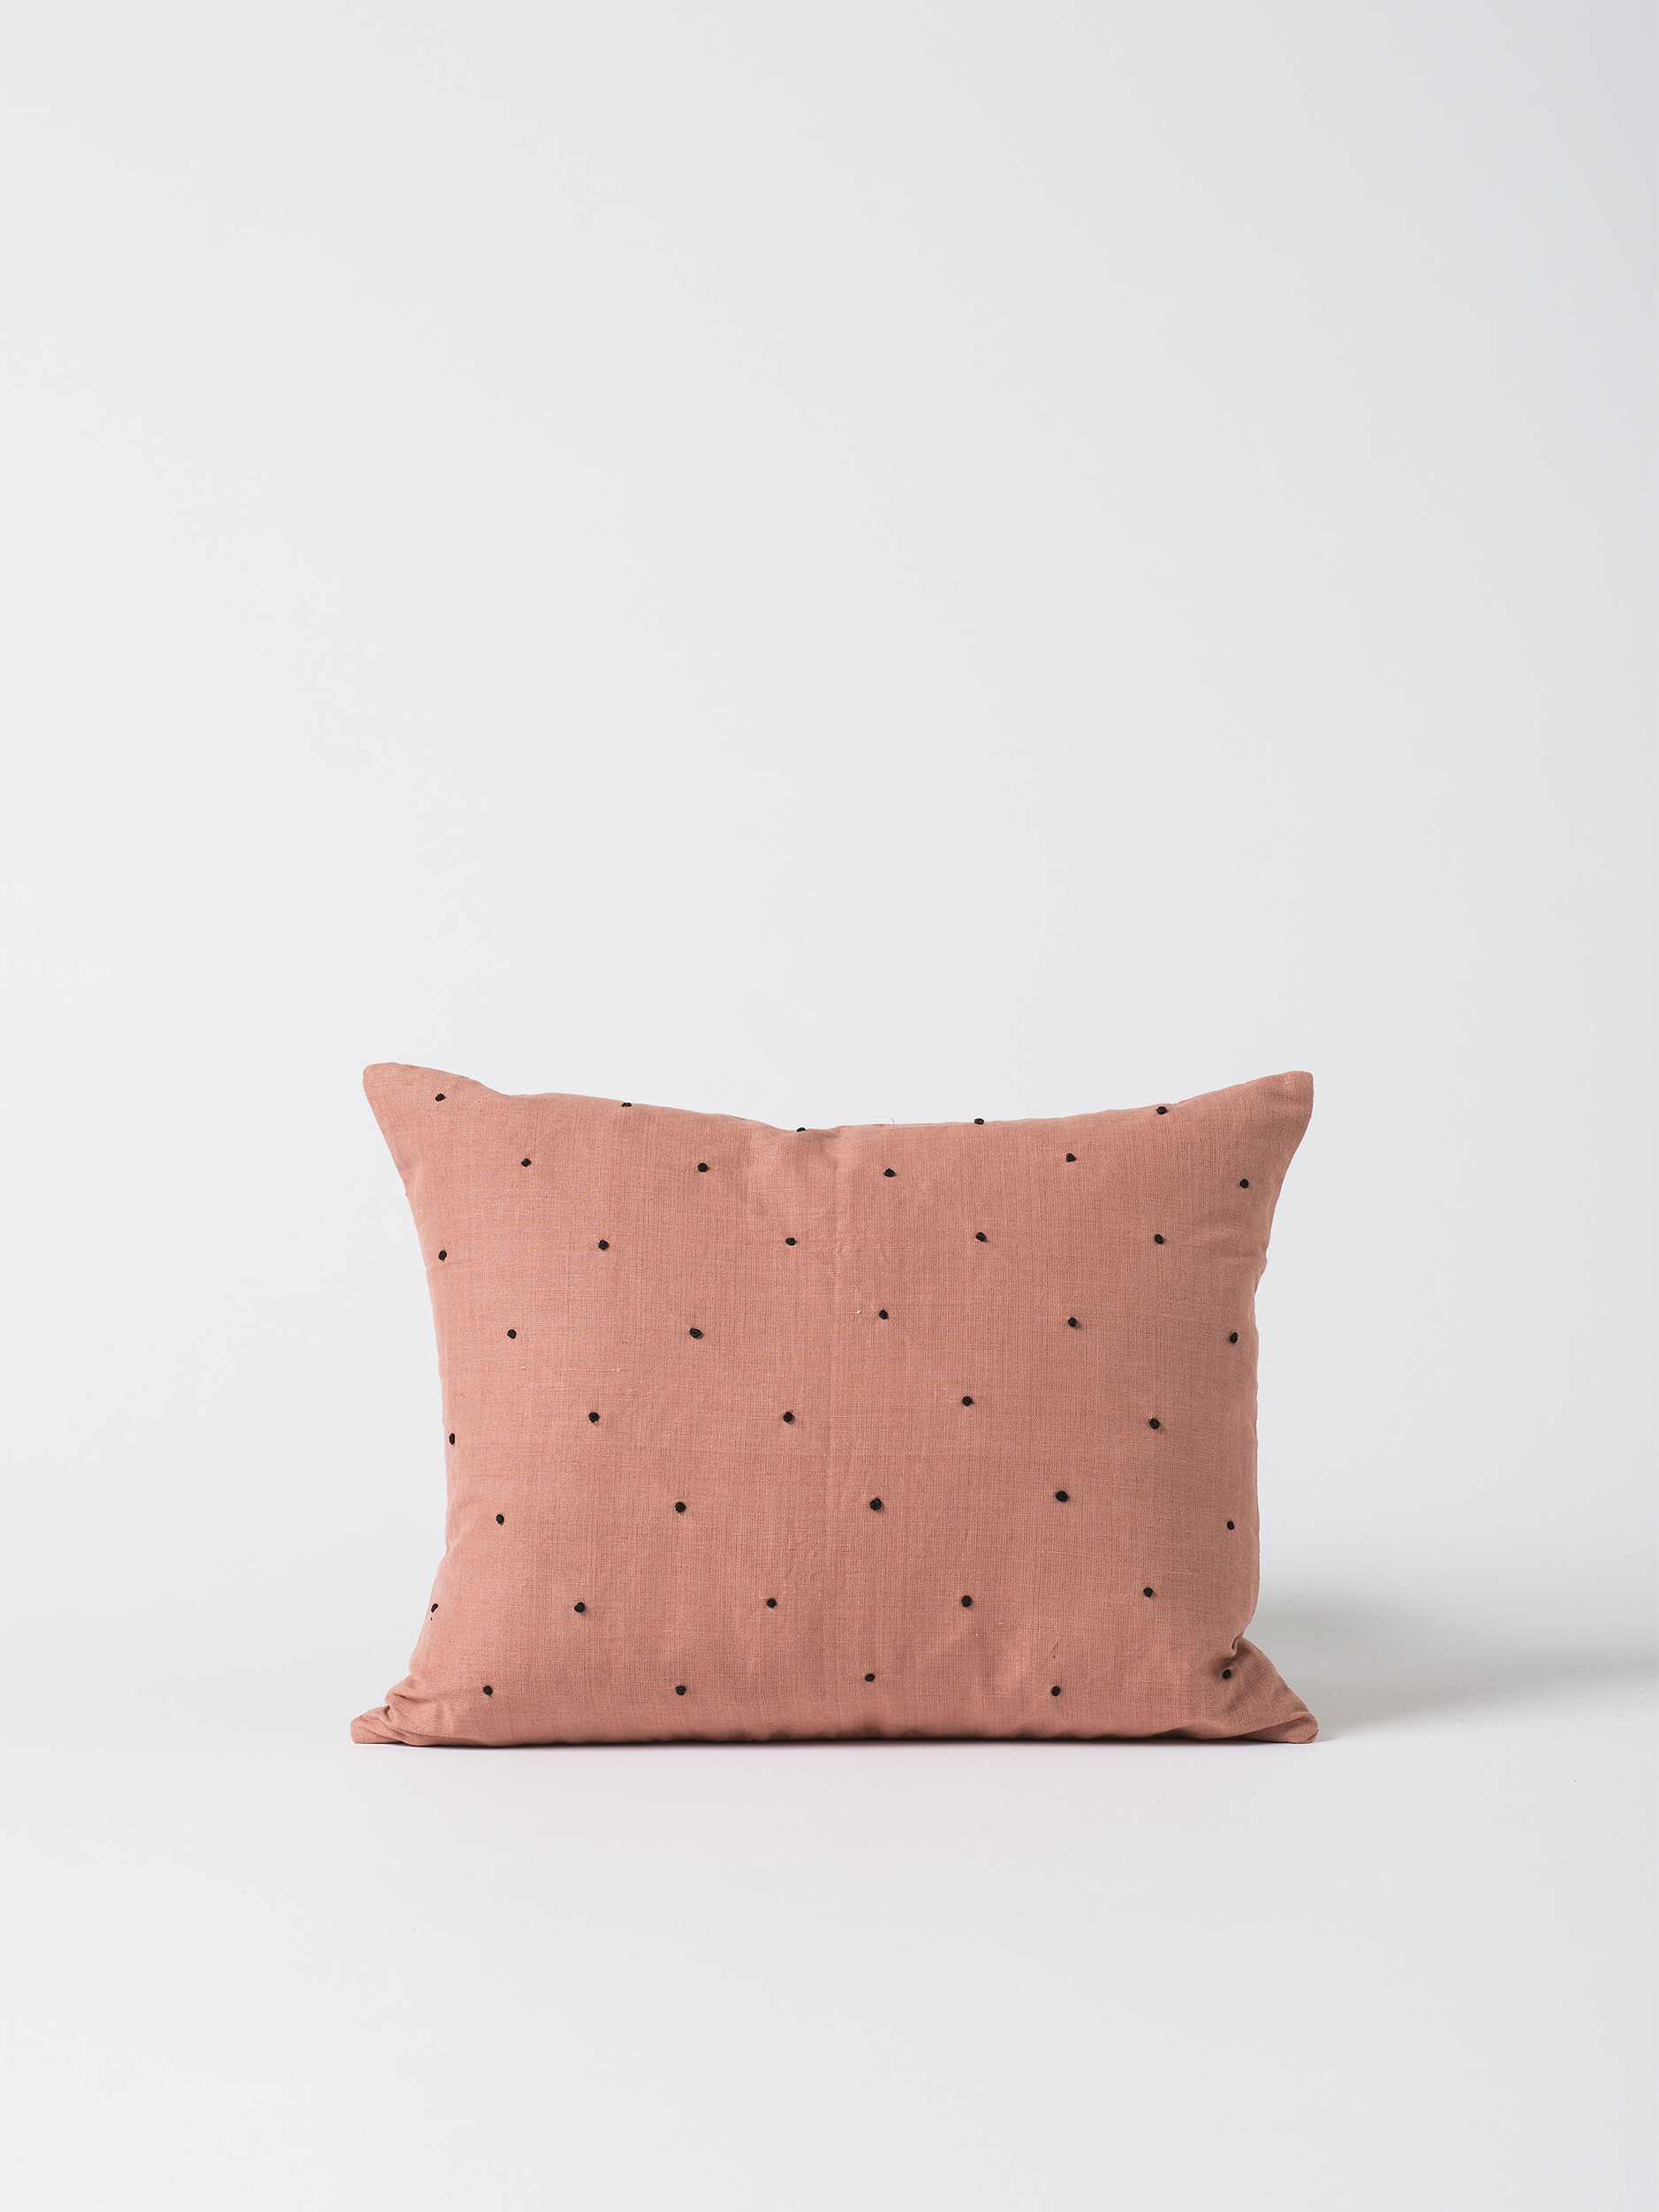 Mia Embroidered Linen Cushion Cover $59.90